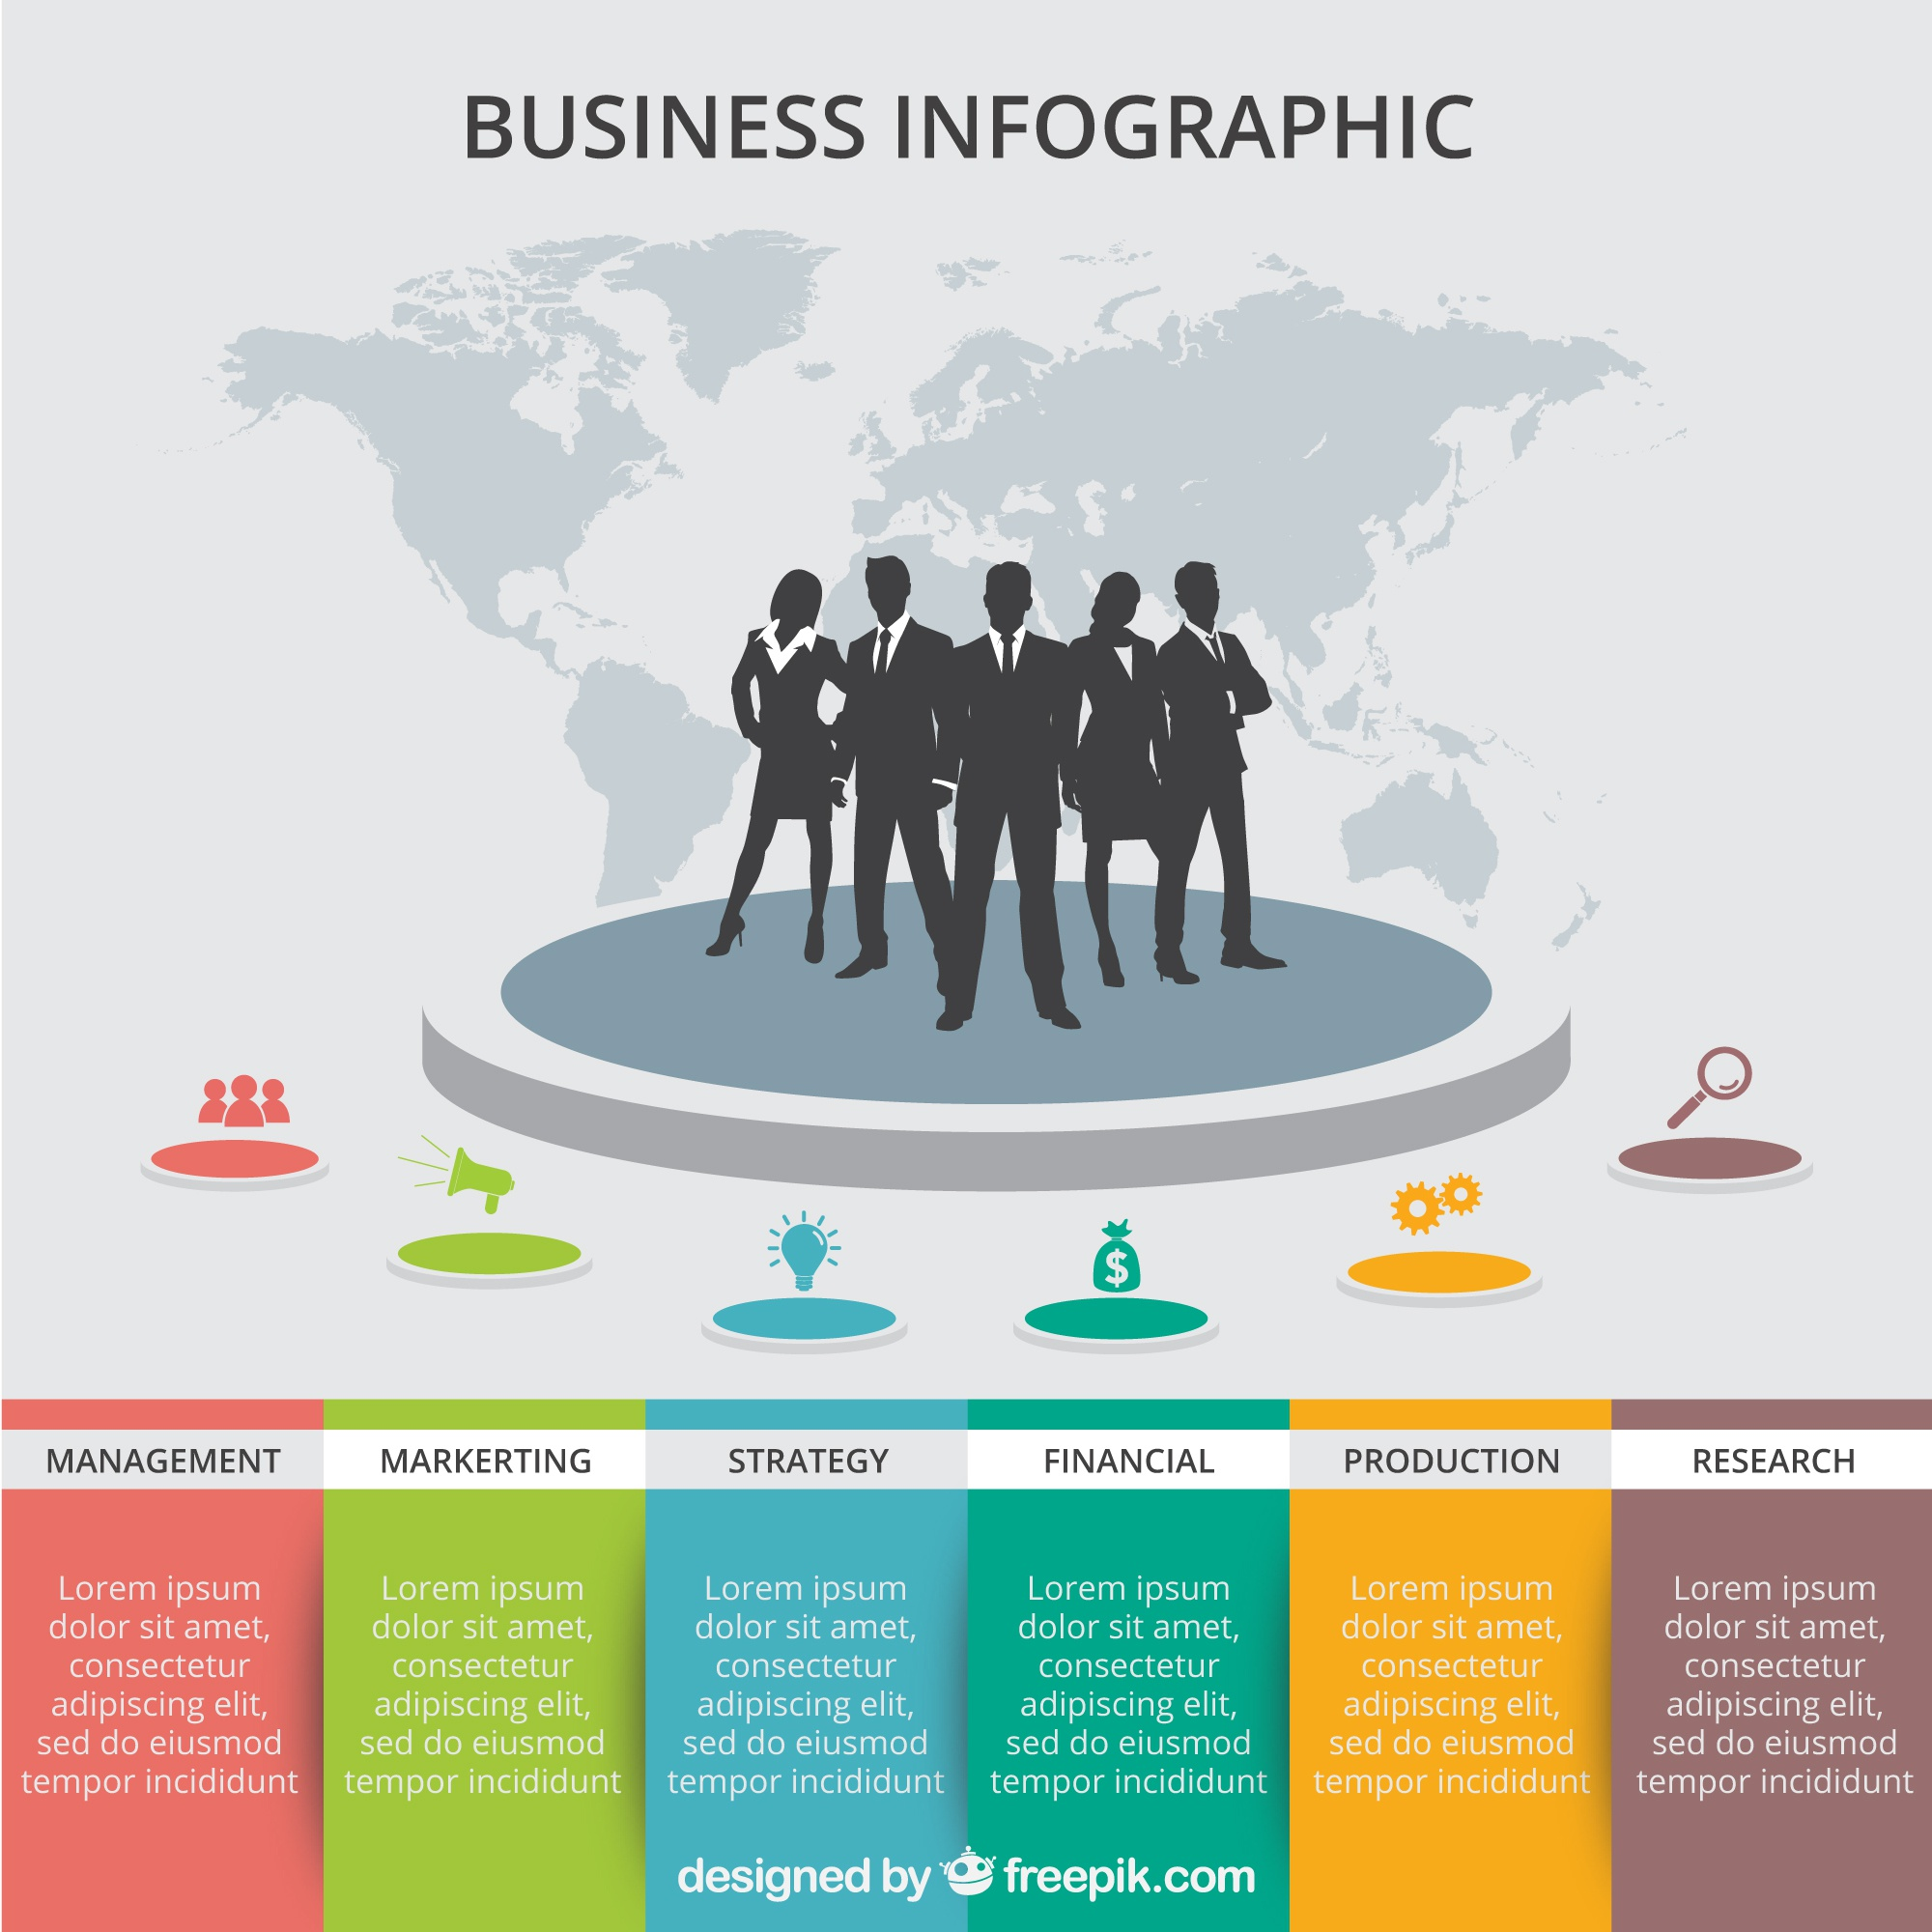 Bunte Business-Infografik